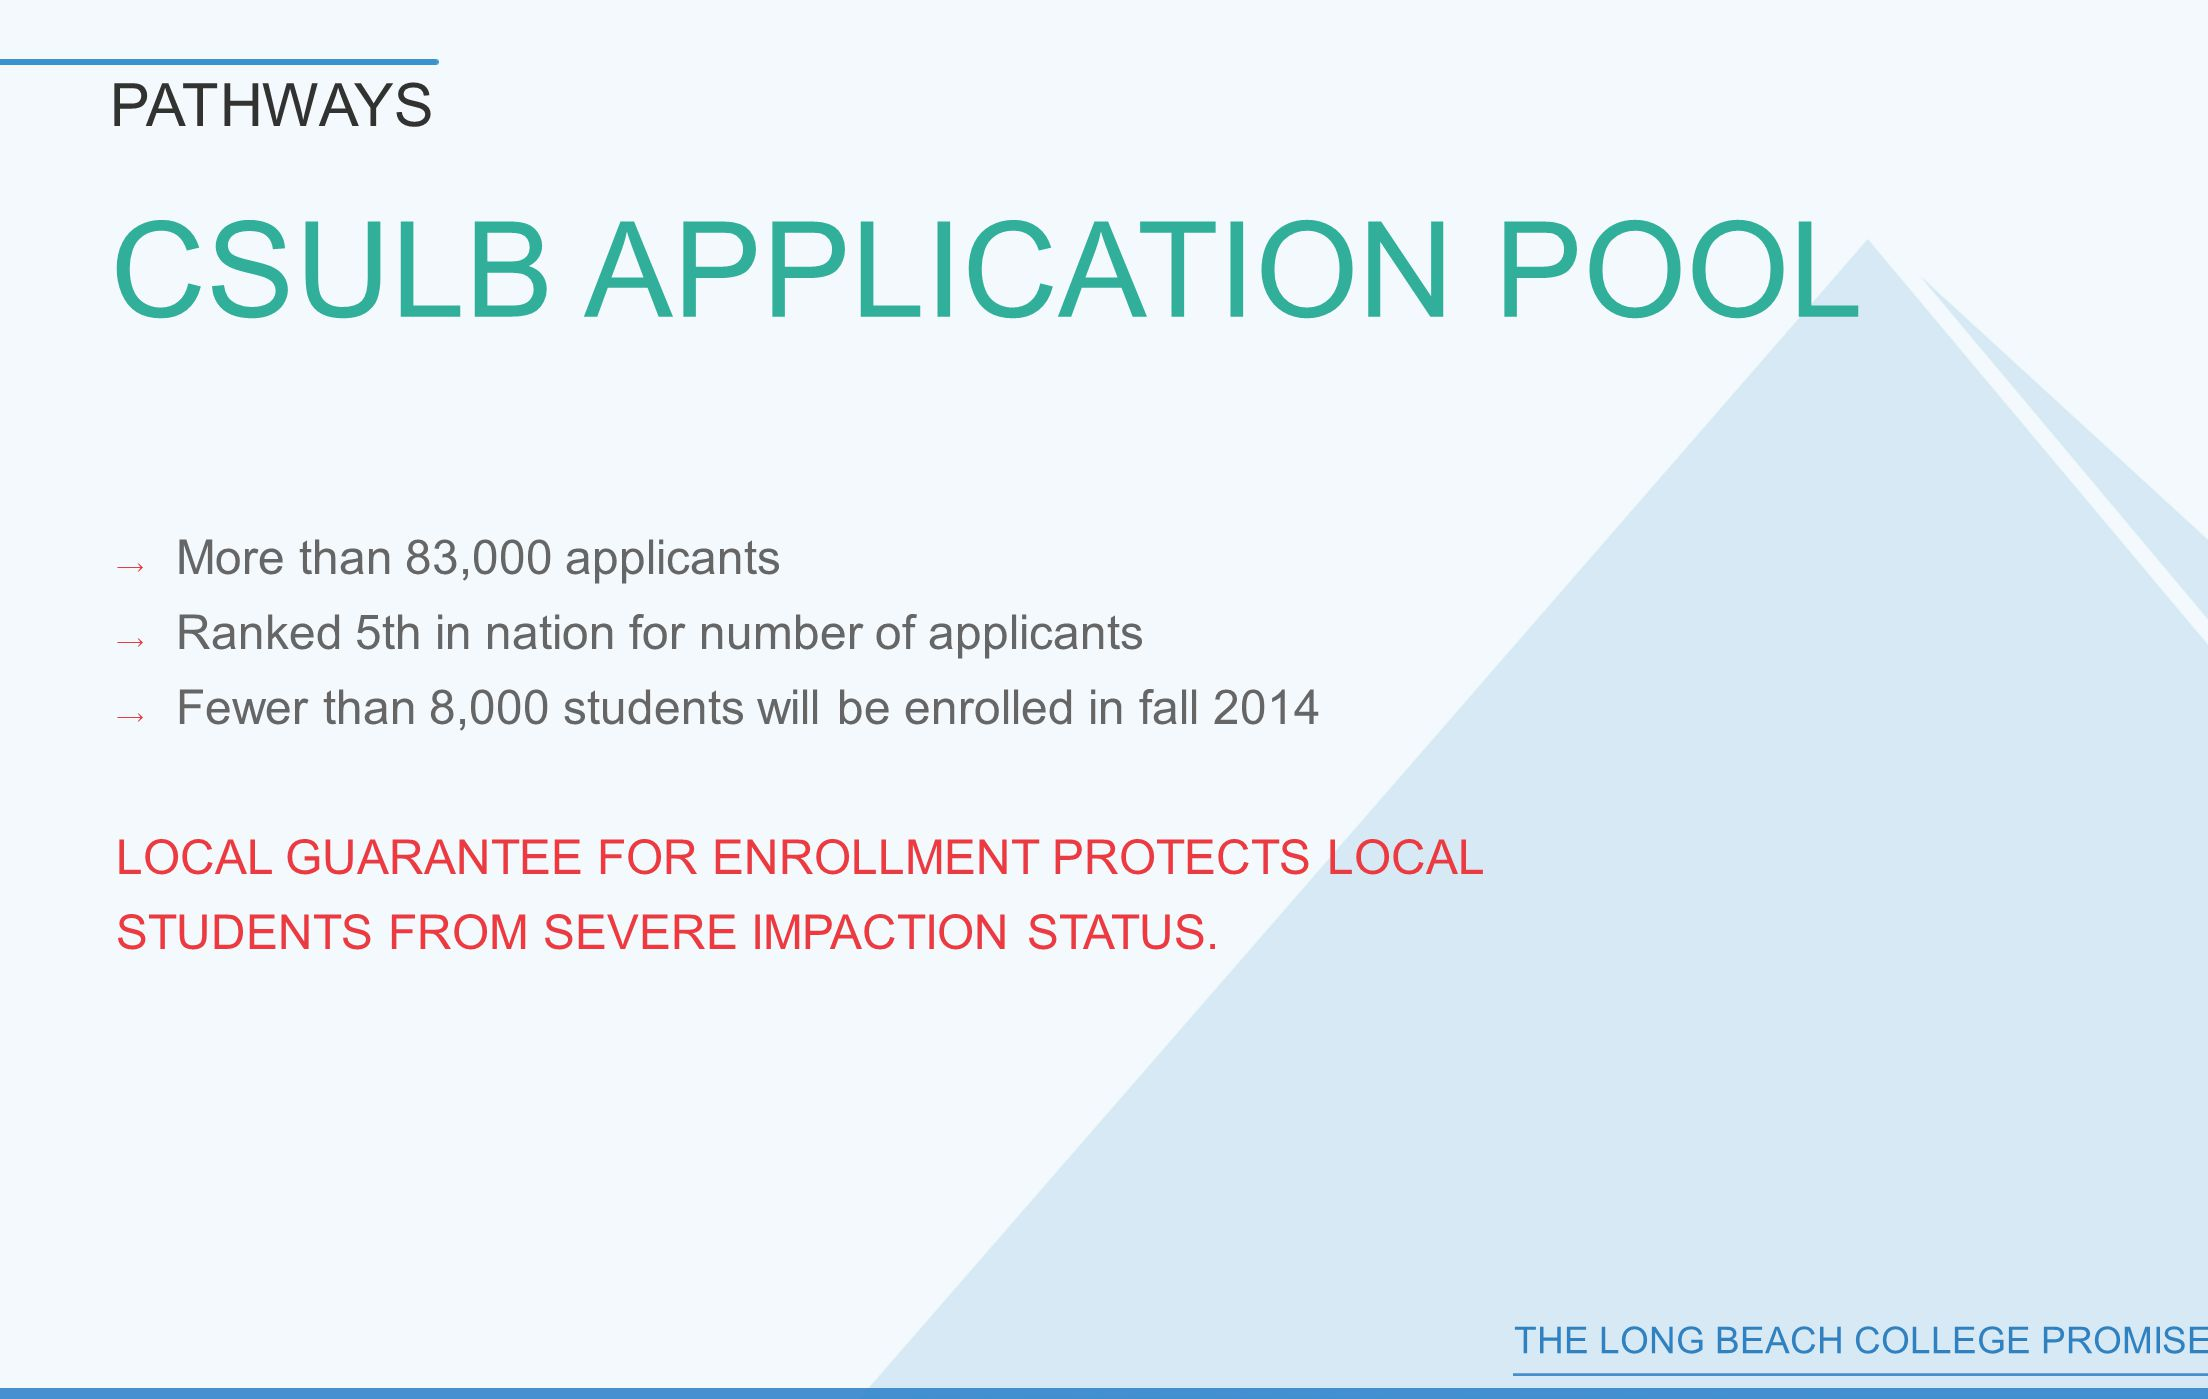 THE LONG BEACH COLLEGE PROMISE CSULB APPLICATION POOL PATHWAYS  More than 83,000 applicants  Ranked 5th in nation for number of applicants  Fewer than 8,000 students will be enrolled in fall 2014 LOCAL GUARANTEE FOR ENROLLMENT PROTECTS LOCAL STUDENTS FROM SEVERE IMPACTION STATUS.